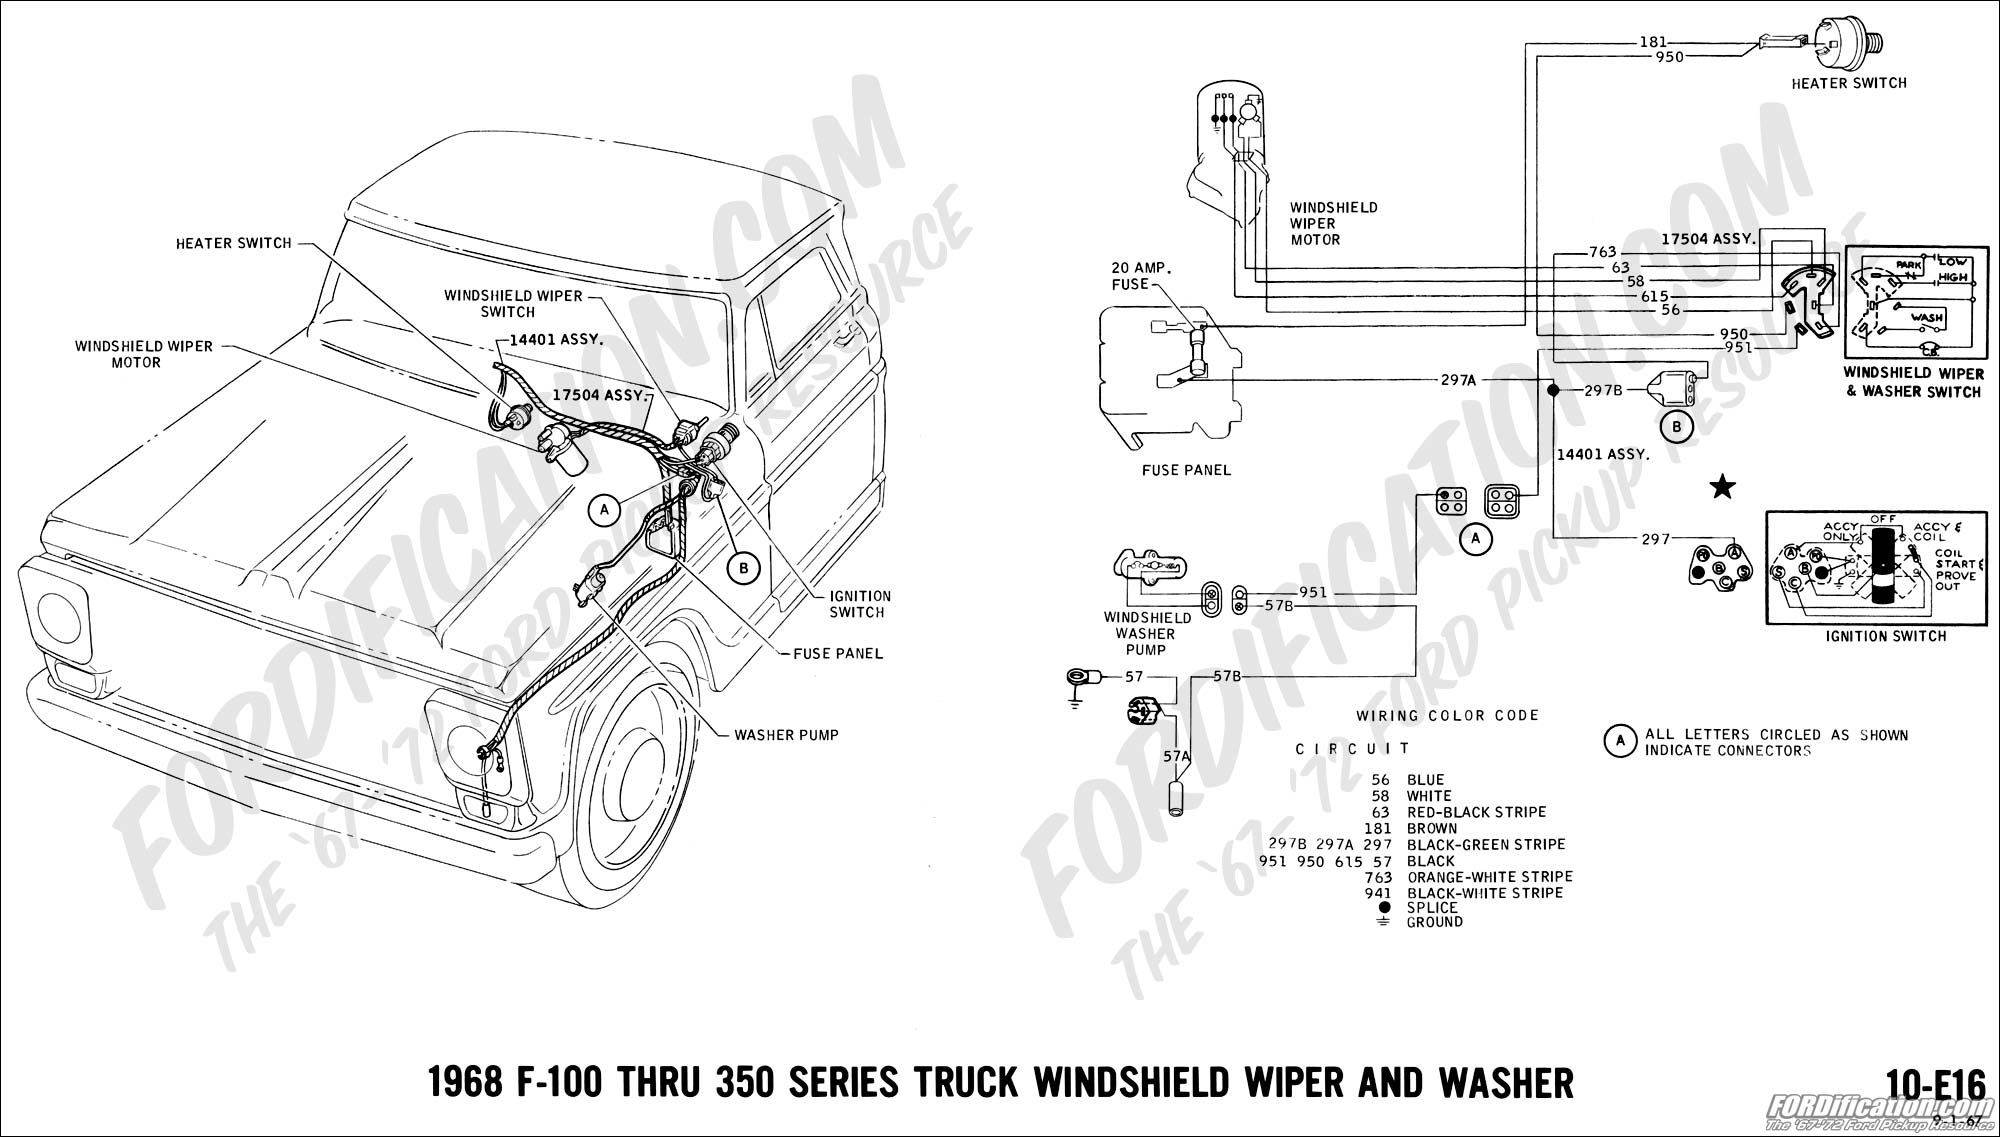 2011 Dodge Nitro Stereo Wiring Diagram Car Speaker further Pontiac G6 2008 2009 Fuse Box Diagram in addition 2005 Chevy Silverado Ignition Wiring Diagram together with 2006 Chevy Colorado Headlight Wiring Diagram in addition 05 14 Mustang Gt V6 Fuse Diagram 2005 2006 2007 2008 2009 2010 2011 2012 2013 2014. on 2008 dodge ram fuse diagram